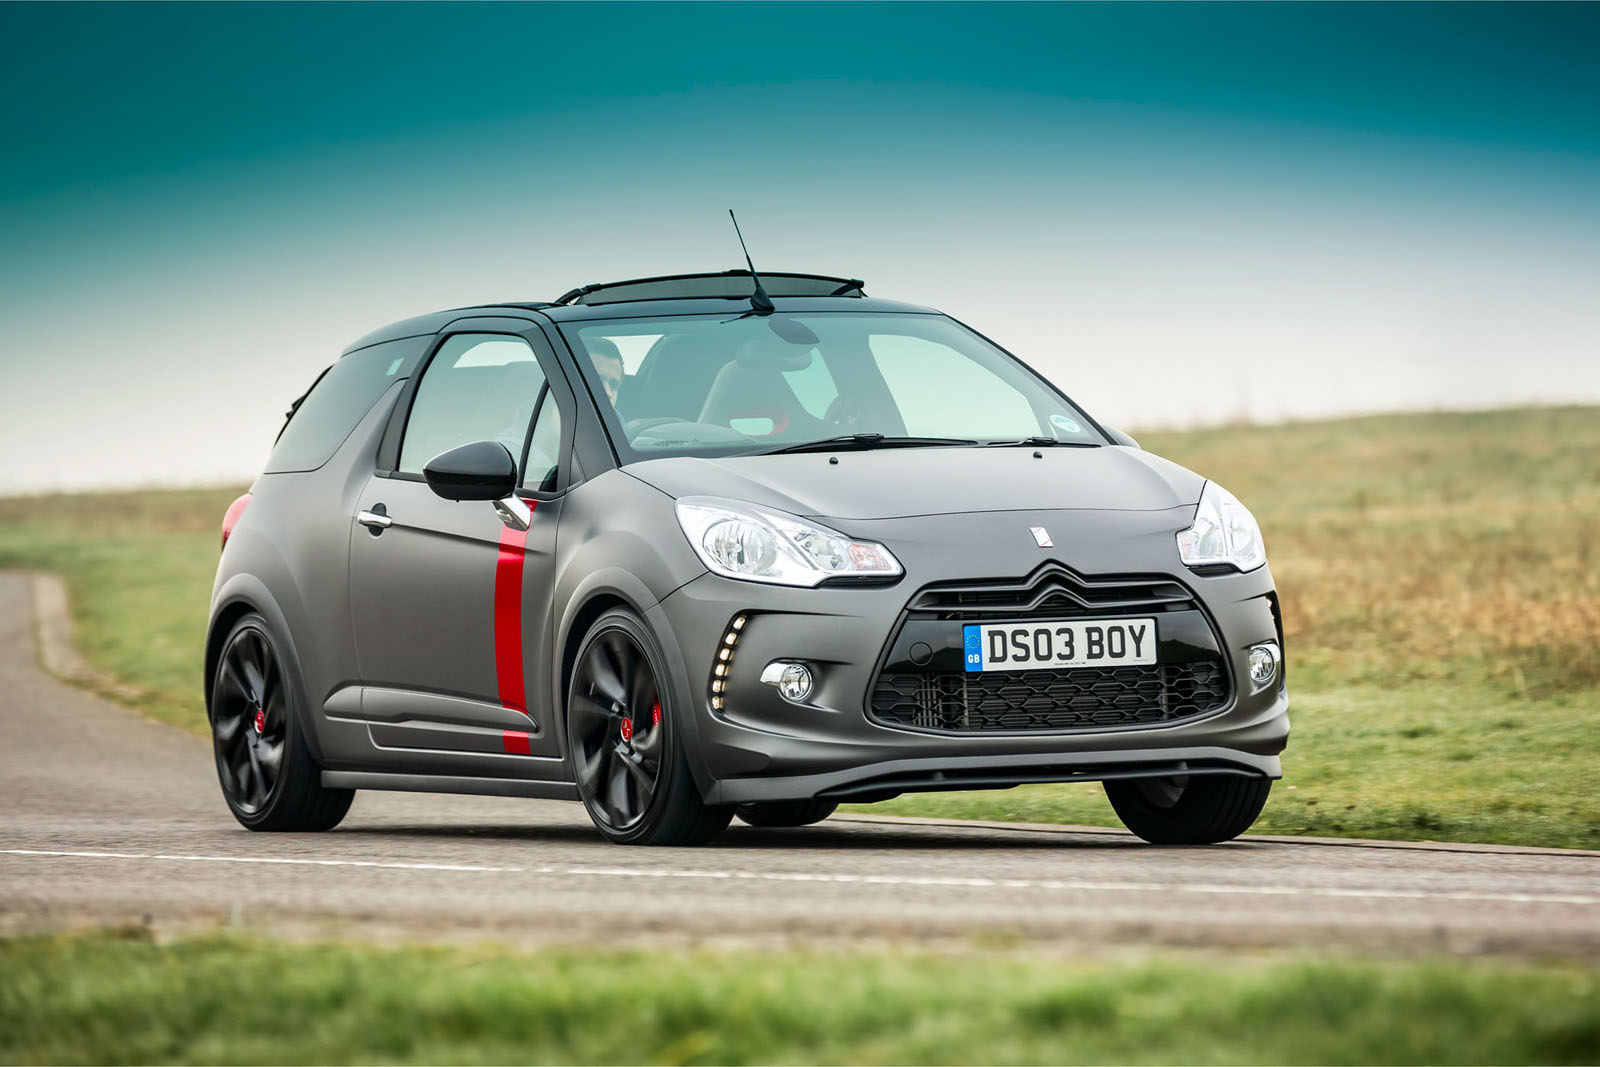 citroen prices ds3 cabrio racing in britain limits deliveries to 10 units autoevolution. Black Bedroom Furniture Sets. Home Design Ideas